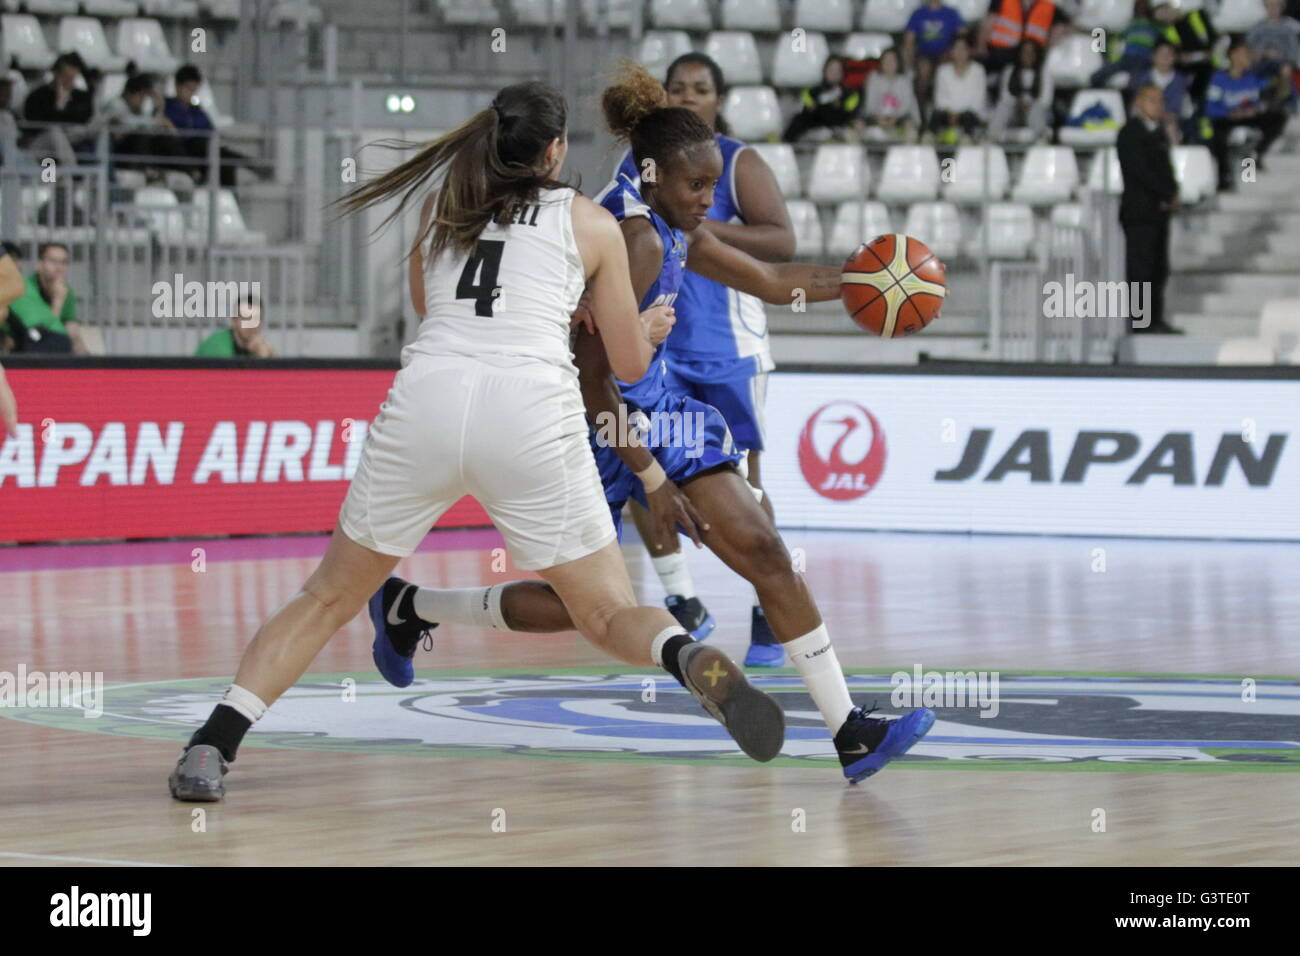 Nantes, France. 15th June, 2016. at the Group A match New Zealand - Cuba Pre Olympic Tournament at the stage of - Stock Image